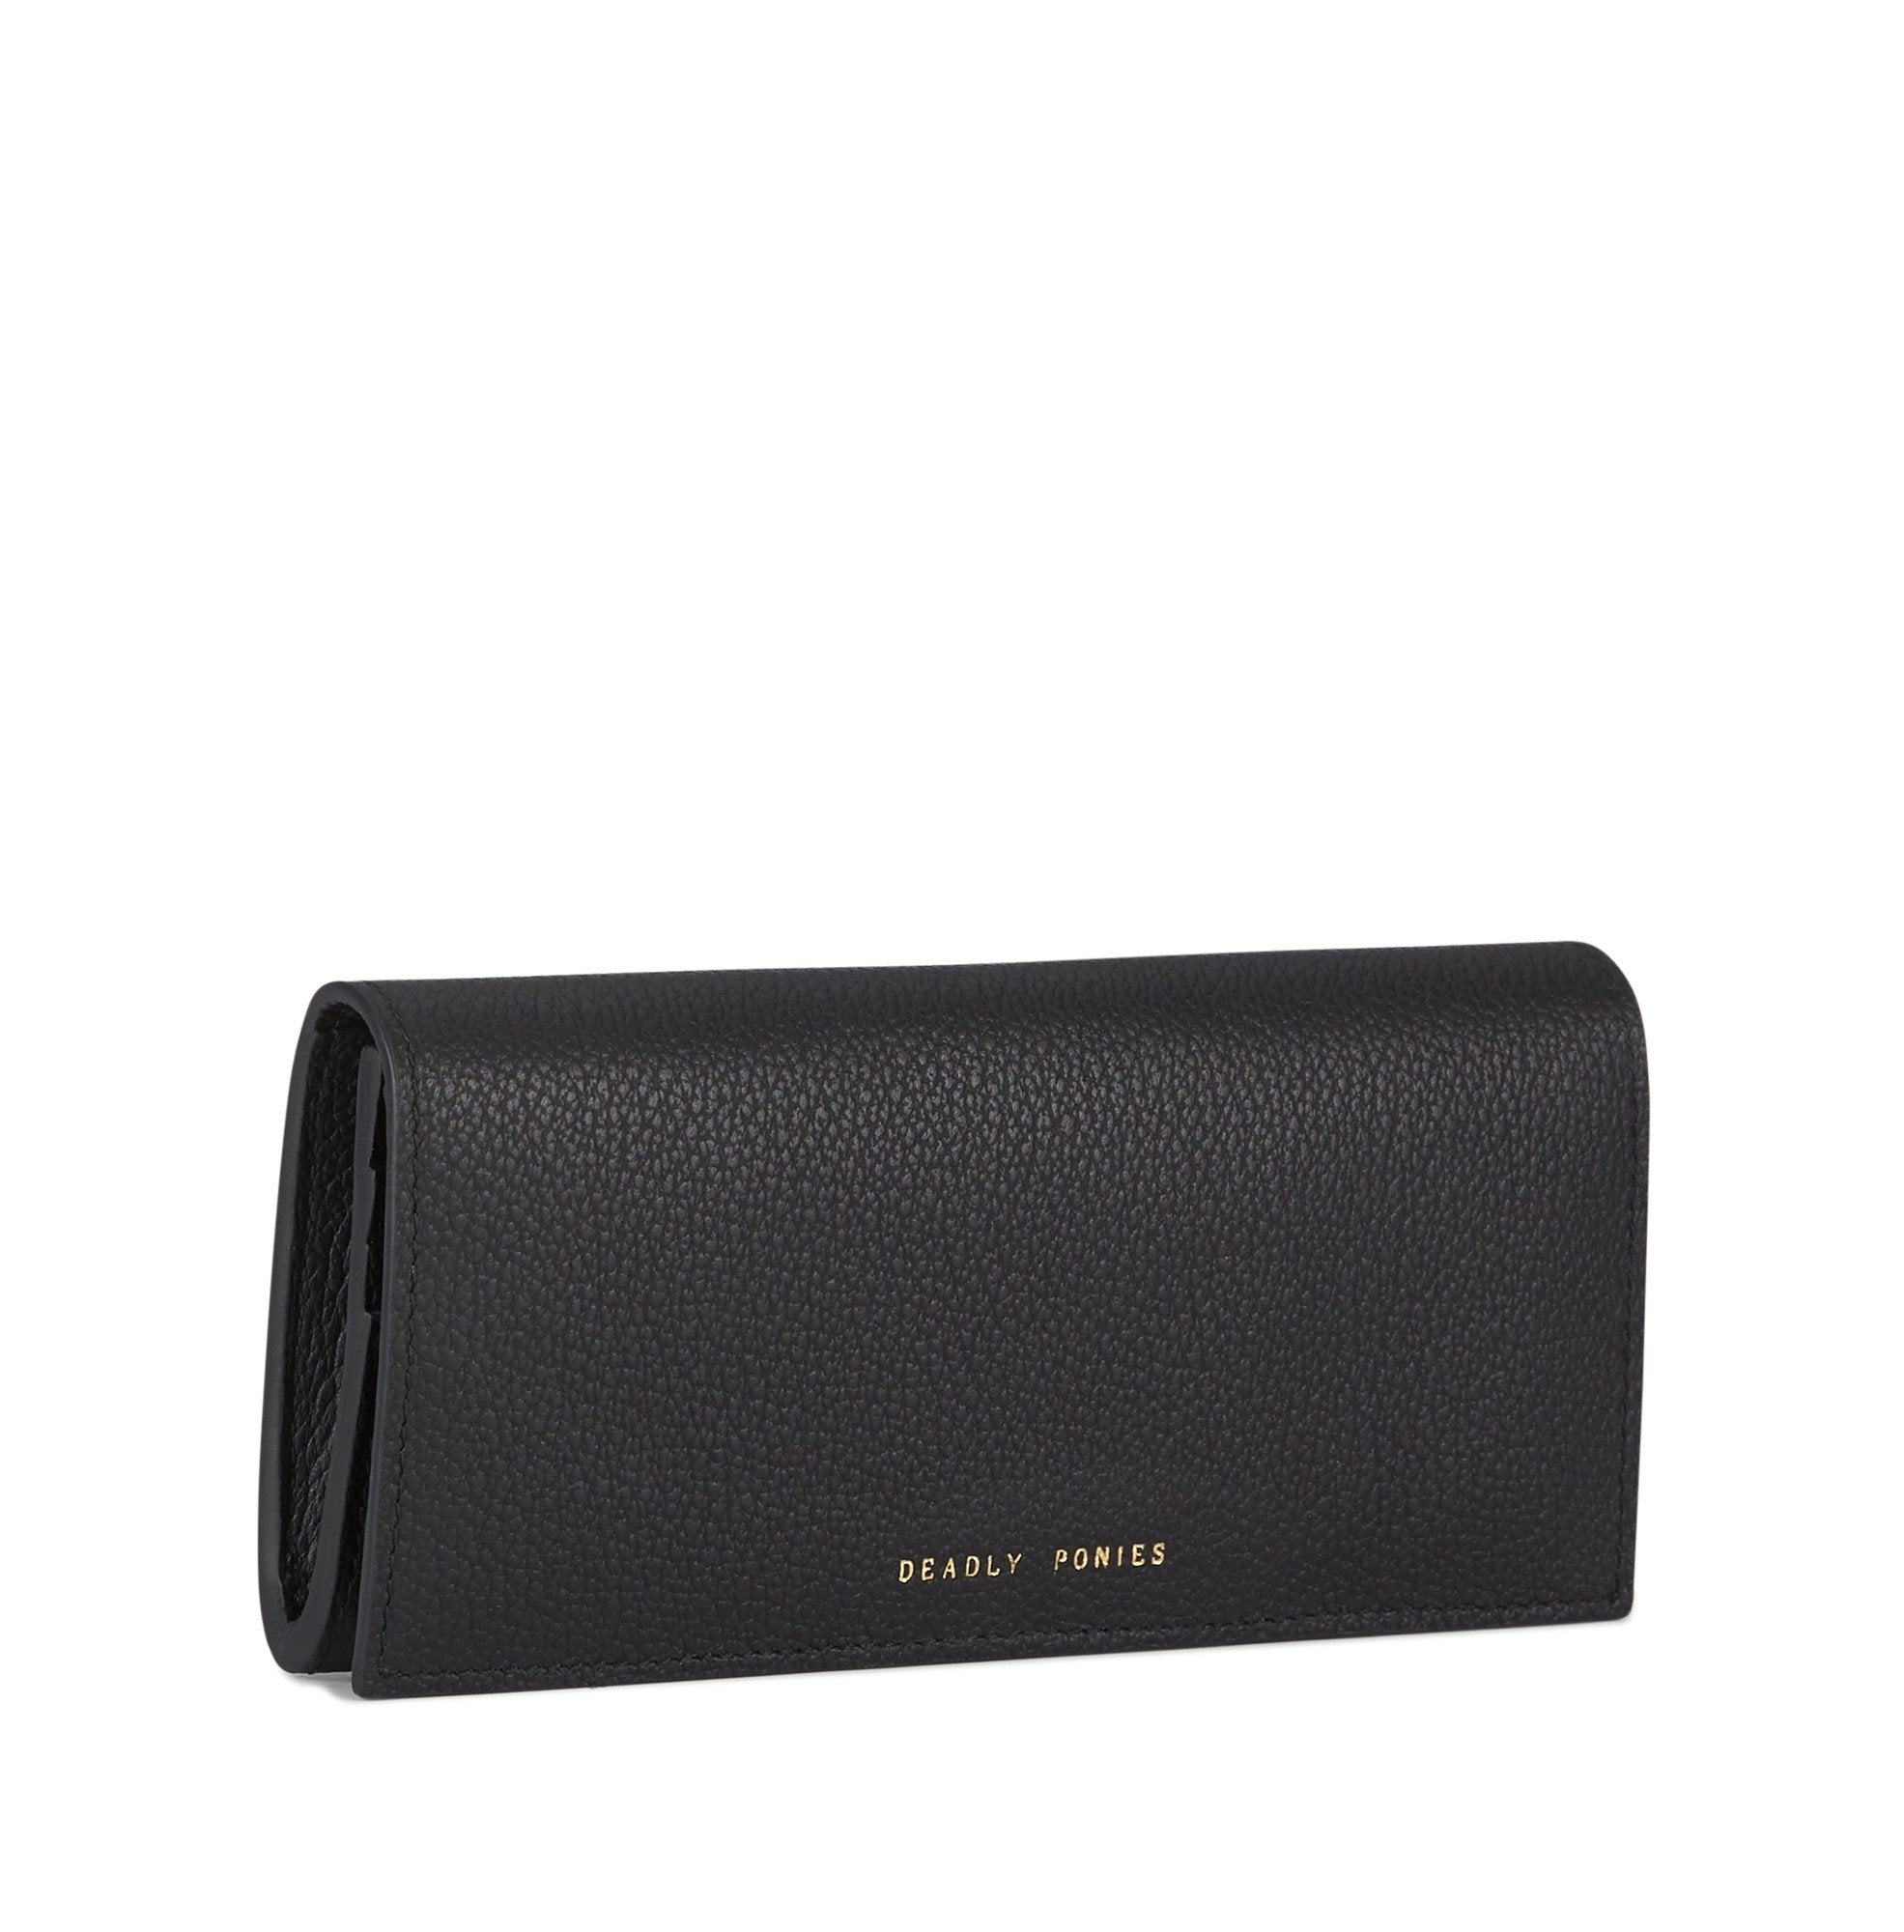 DEADLY PONIES BAG BLACK Deadly Ponies | Lady Wallet  -  Black